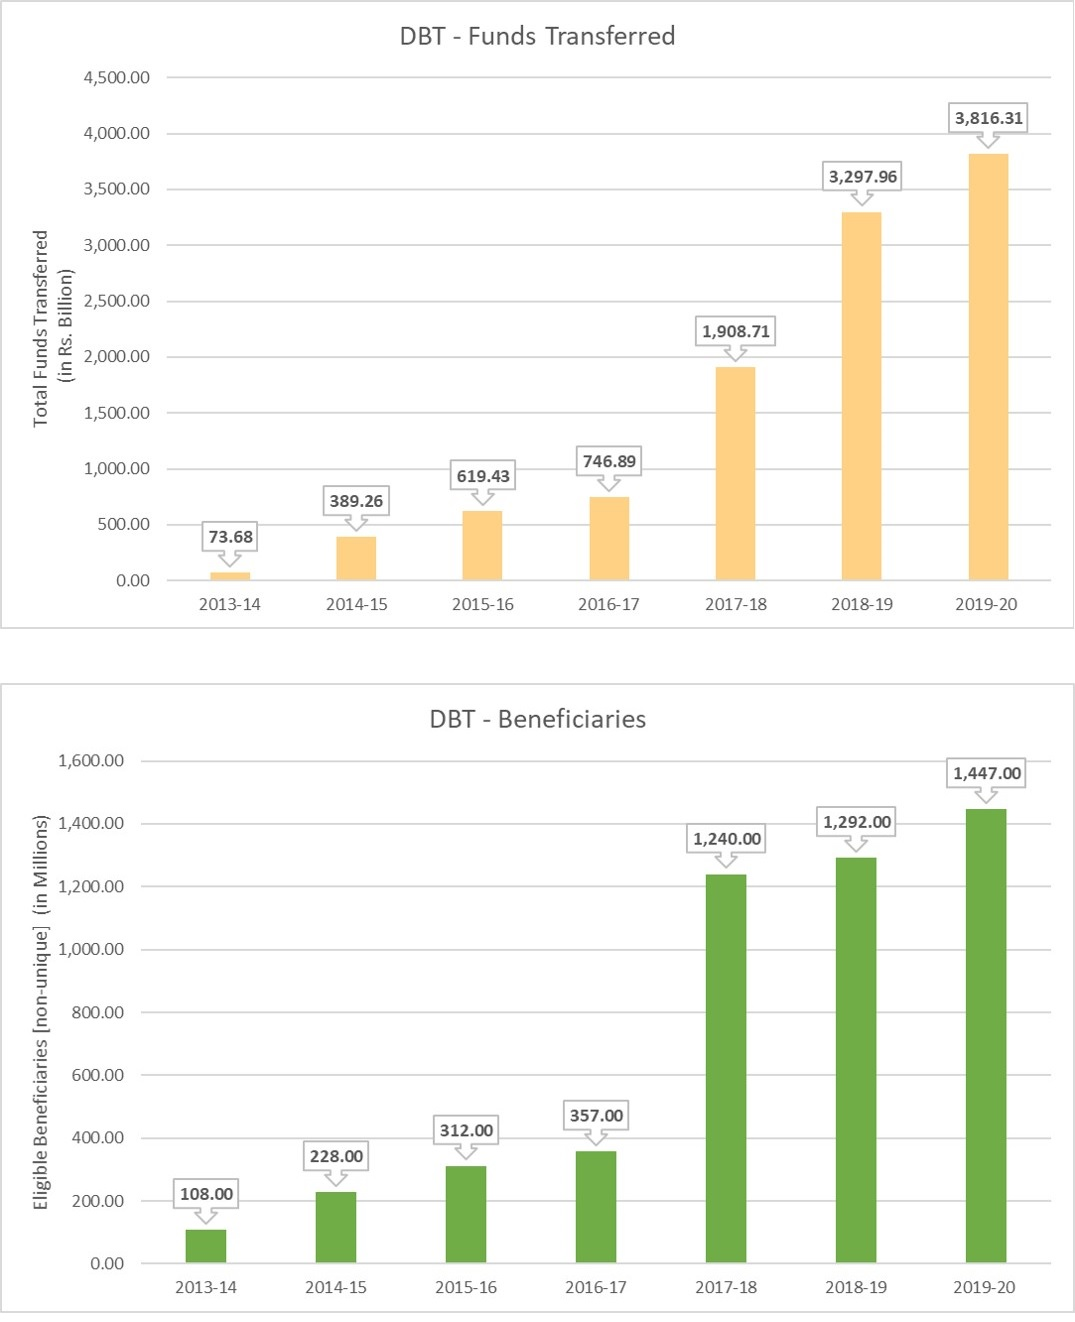 Charts of Direct Benefit Transfer